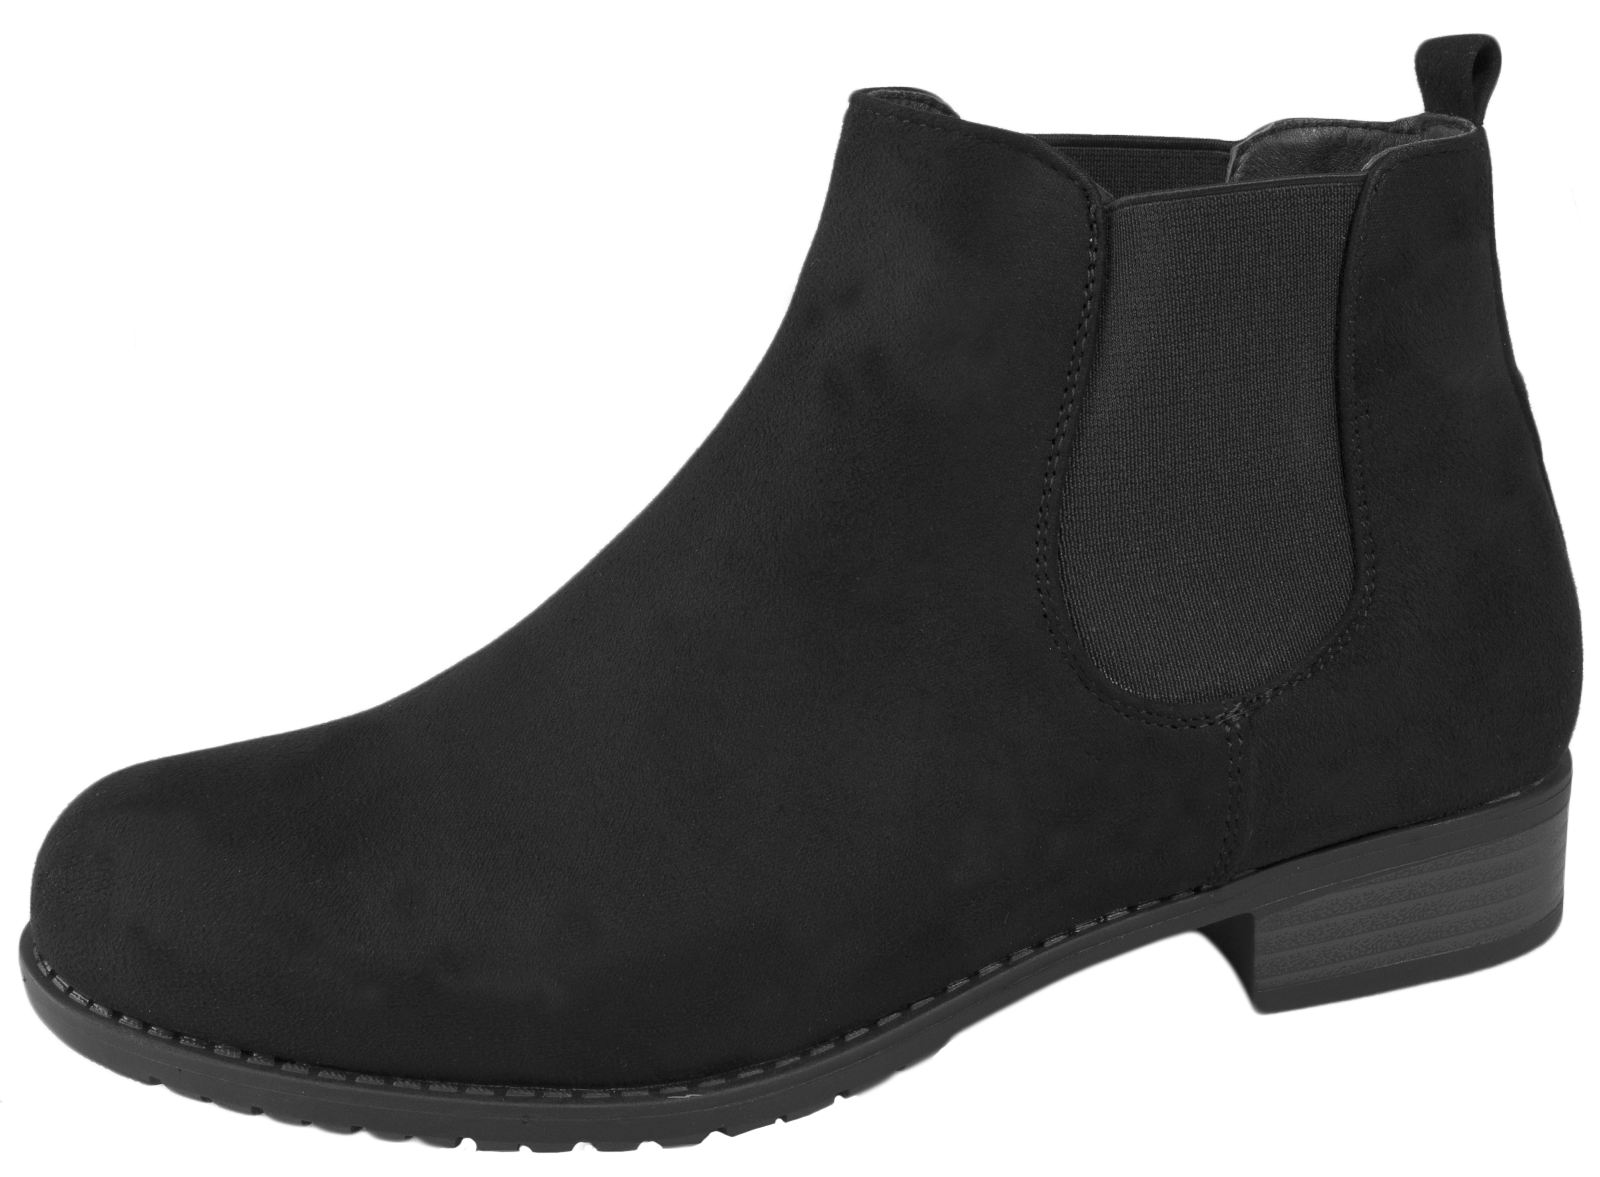 Womens Flat Chelsea Ankle Boots Slip On Gusset Warm Winter Shoes Size UK 3 - 8 | EBay